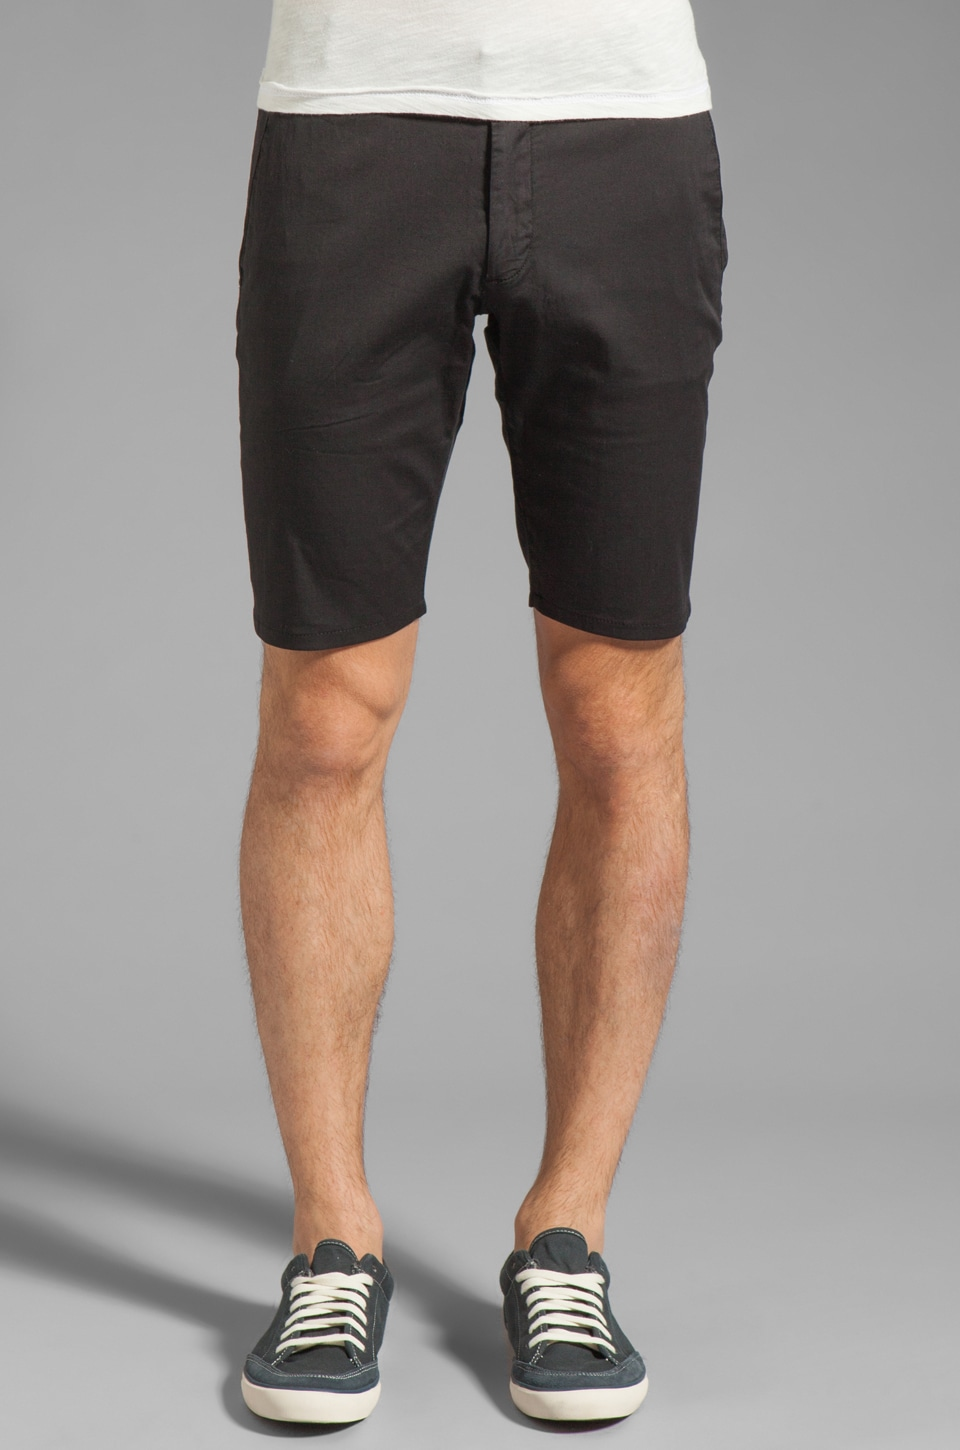 Cohesive & co. Castaway Chino Short in Black